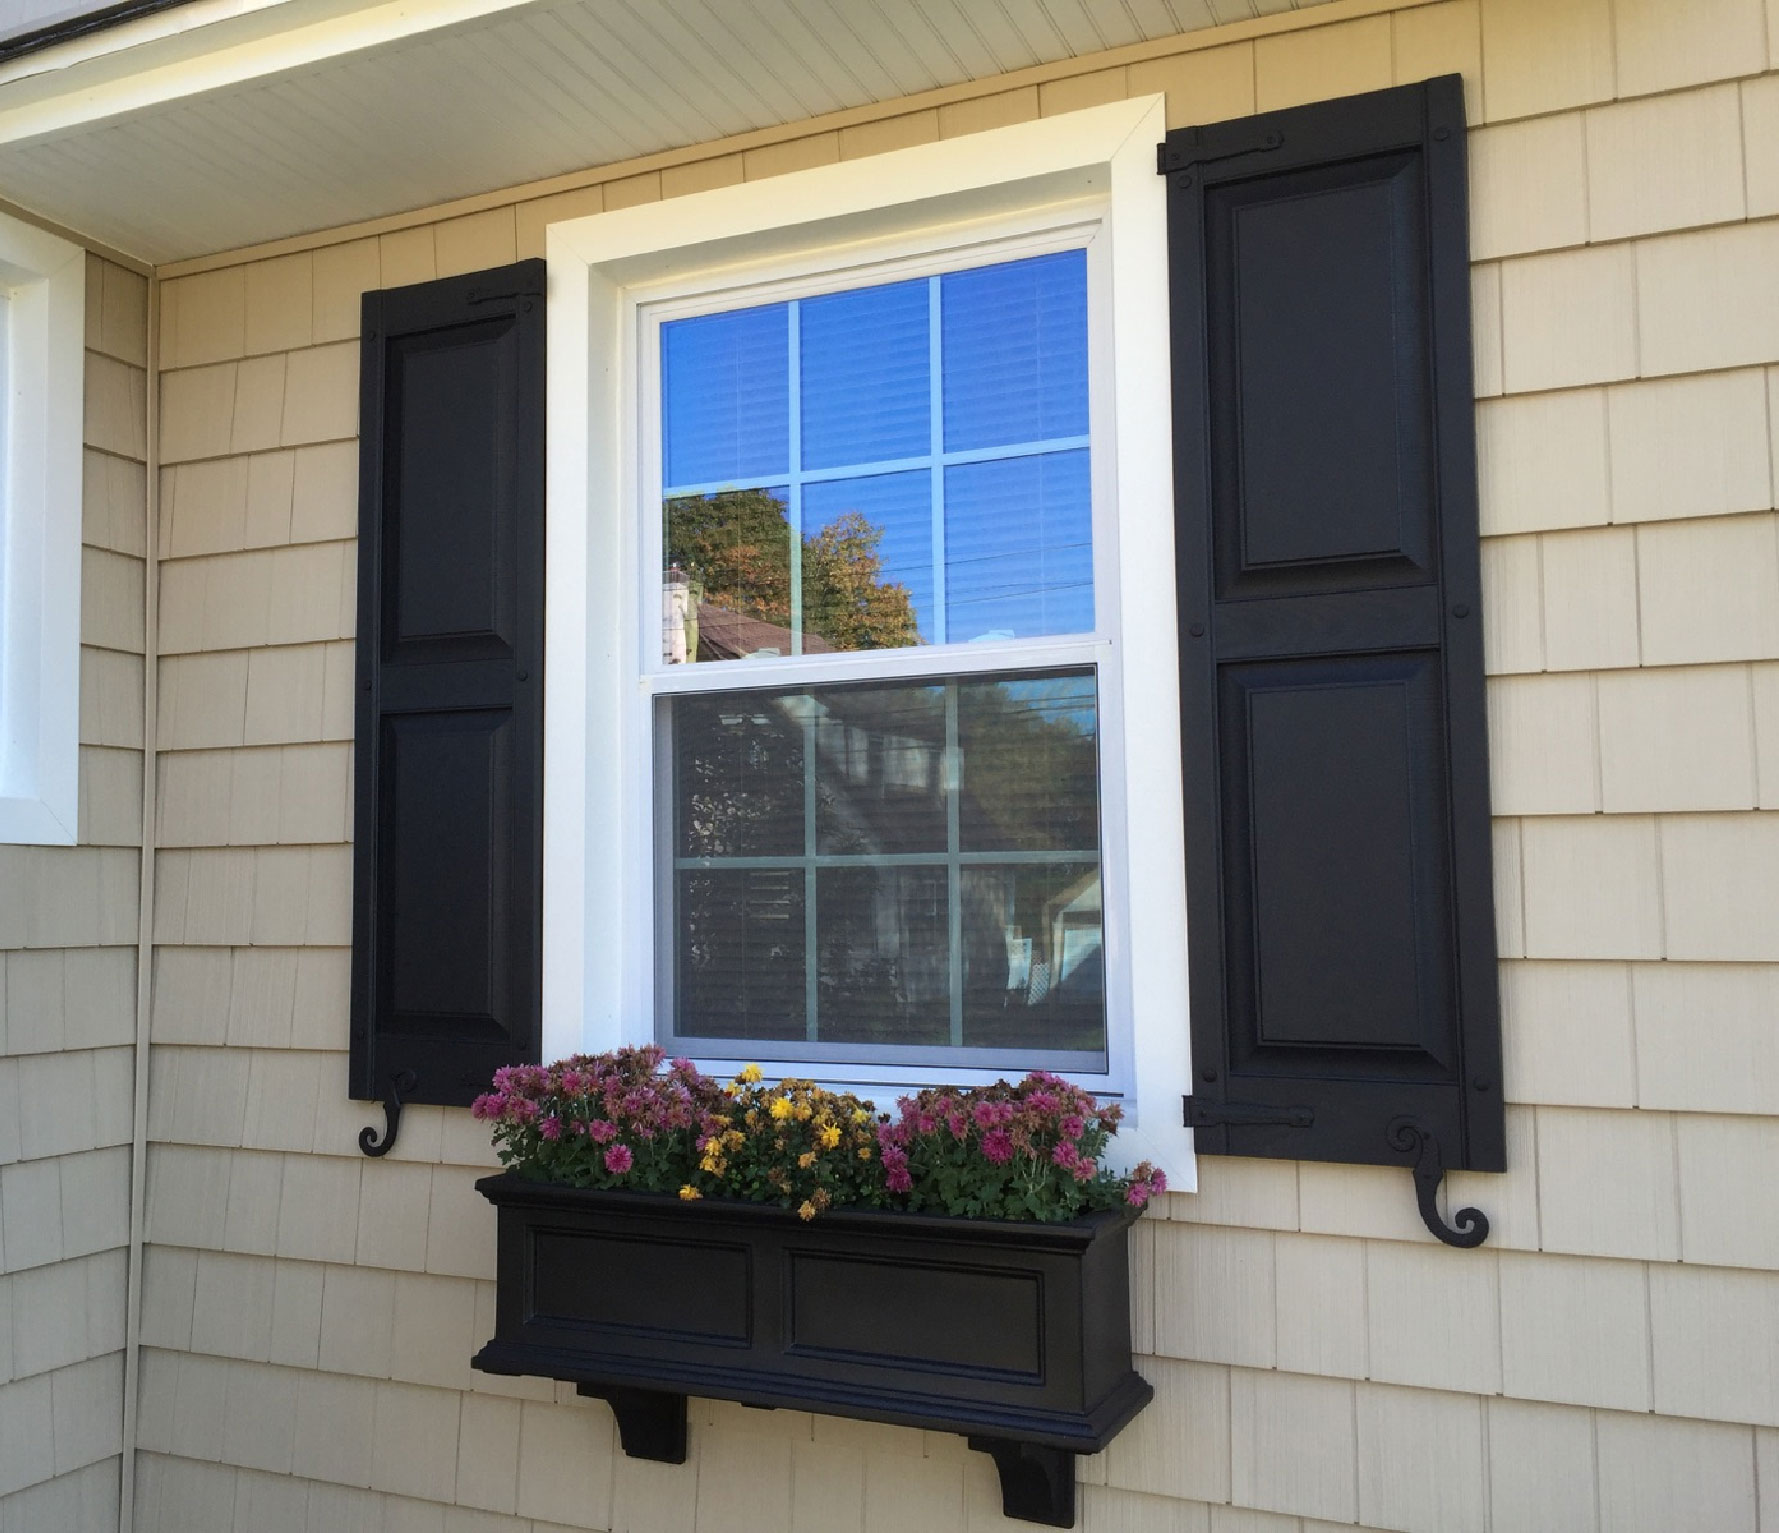 Shutters And Planter Box Project